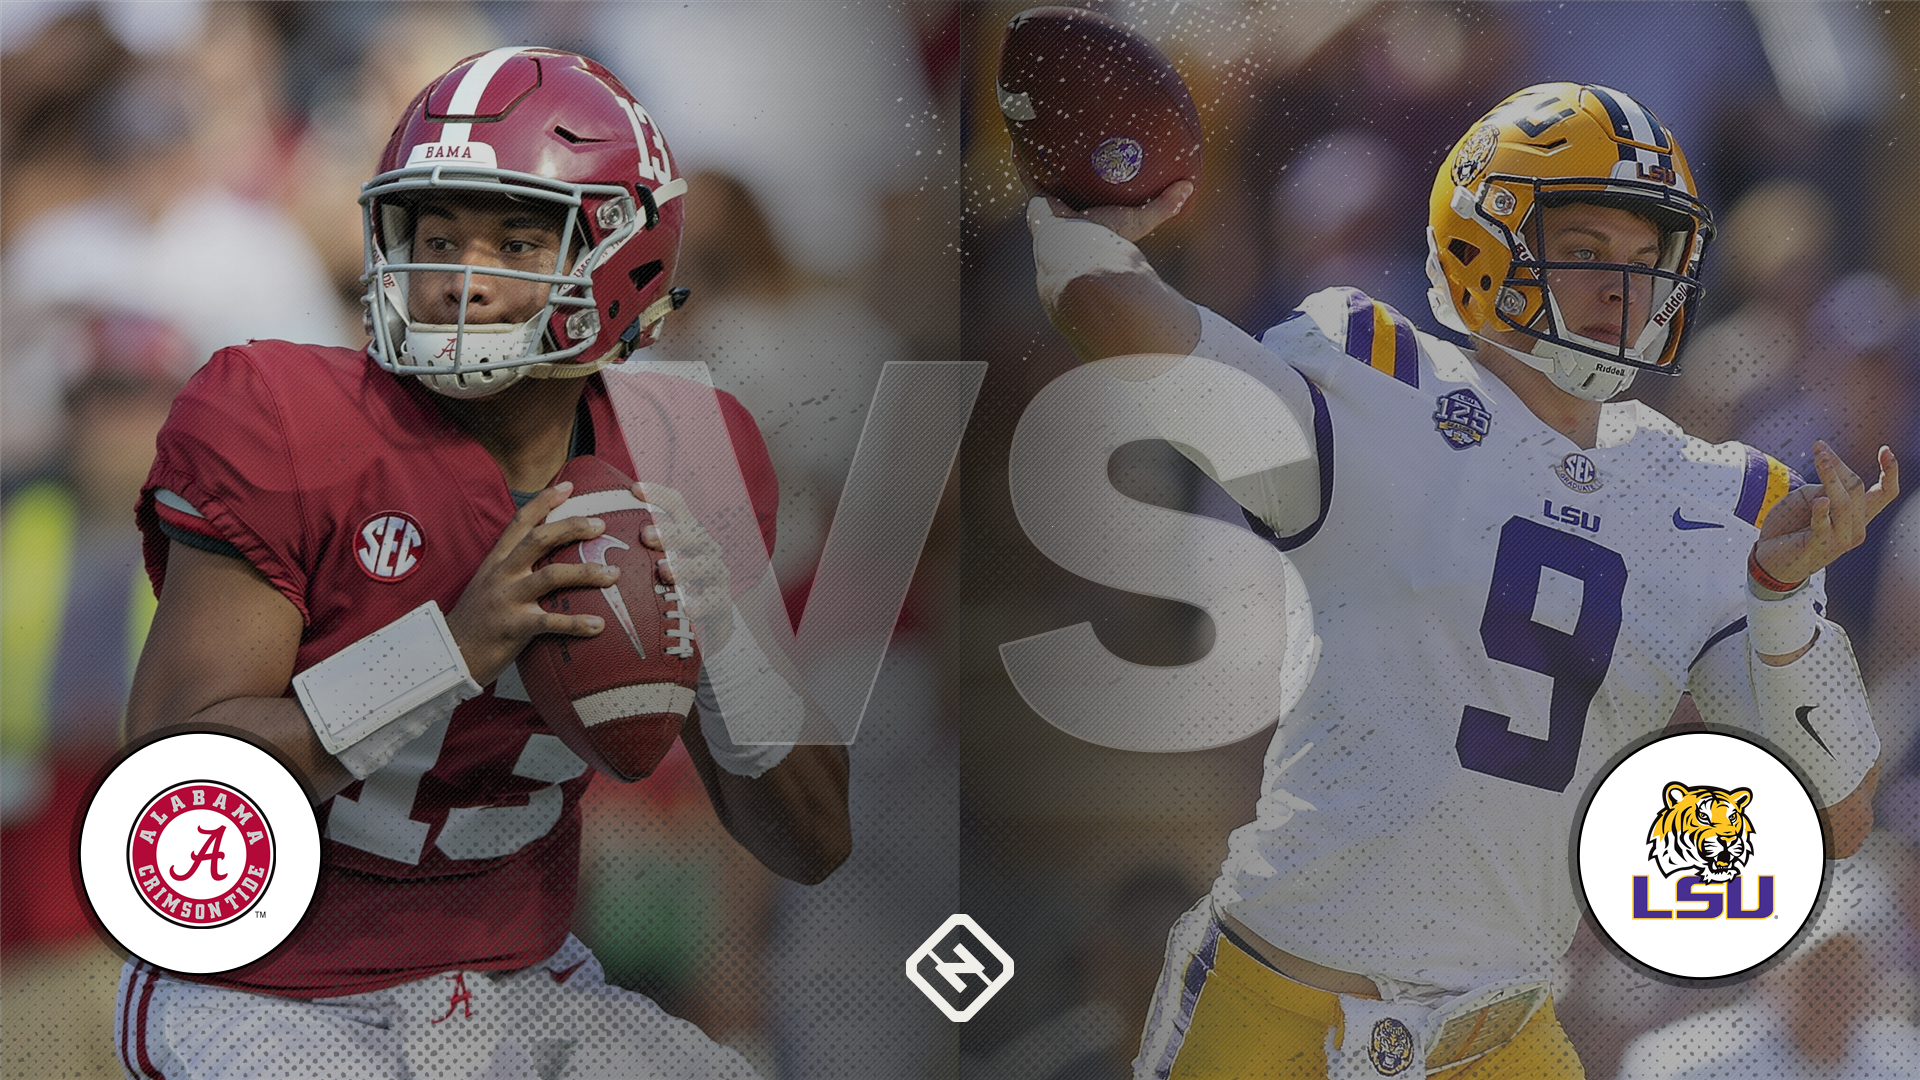 Dominating defensive effort lifts No. 1 Alabama past No. 4 LSU